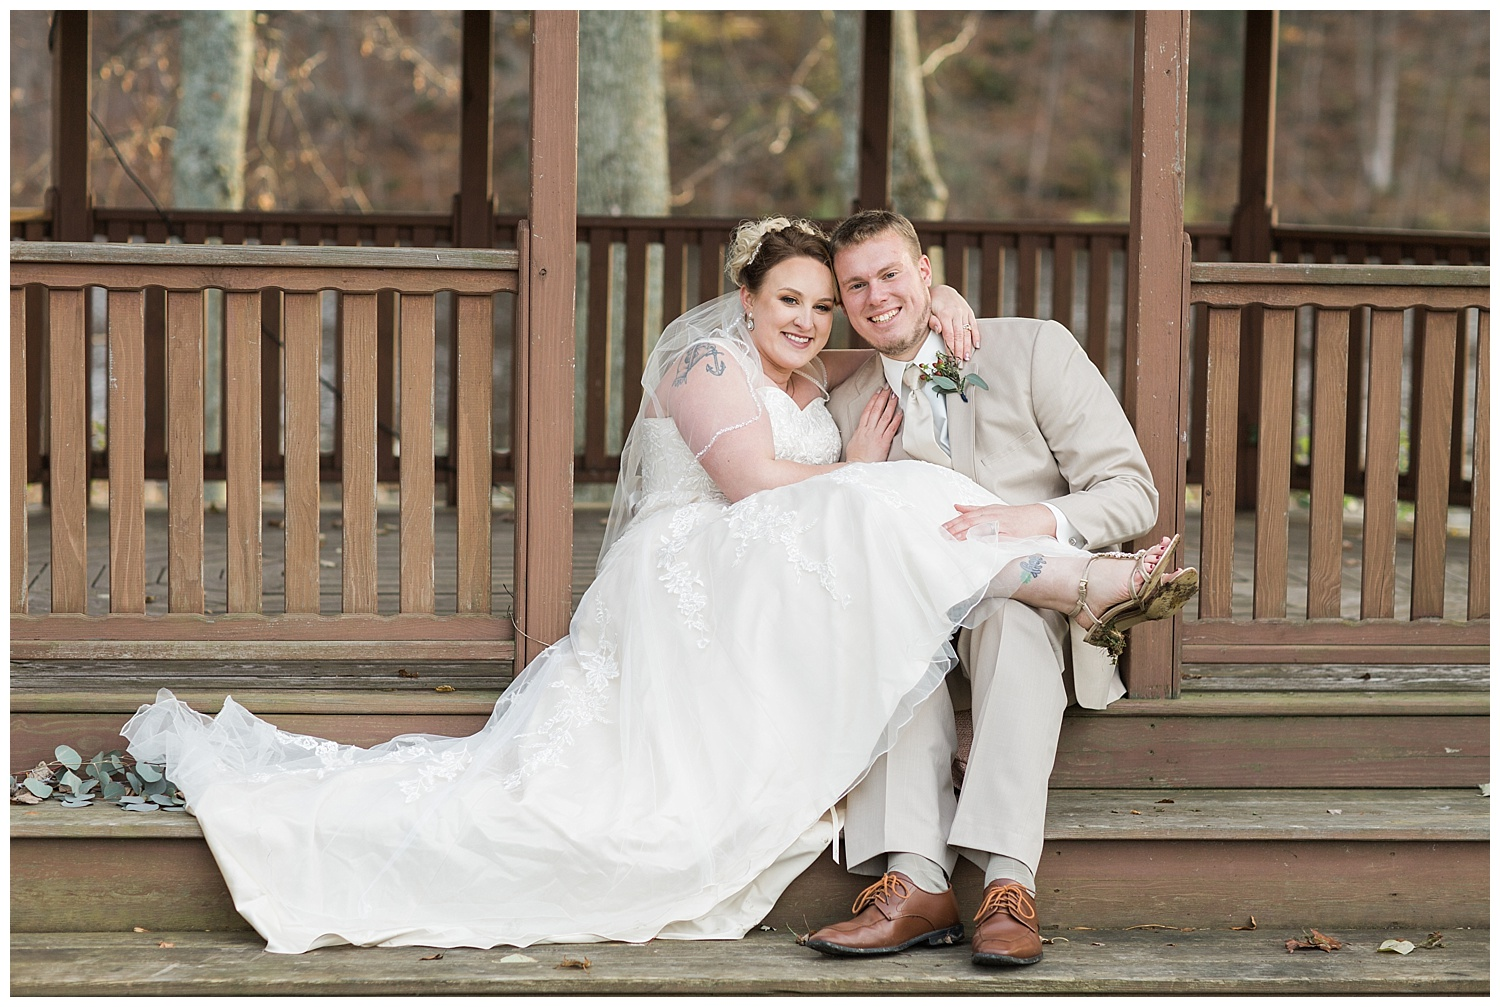 Longwell Wedding - Lass and Beau - Hickory Ridge -973_Buffalo wedding photography.jpg